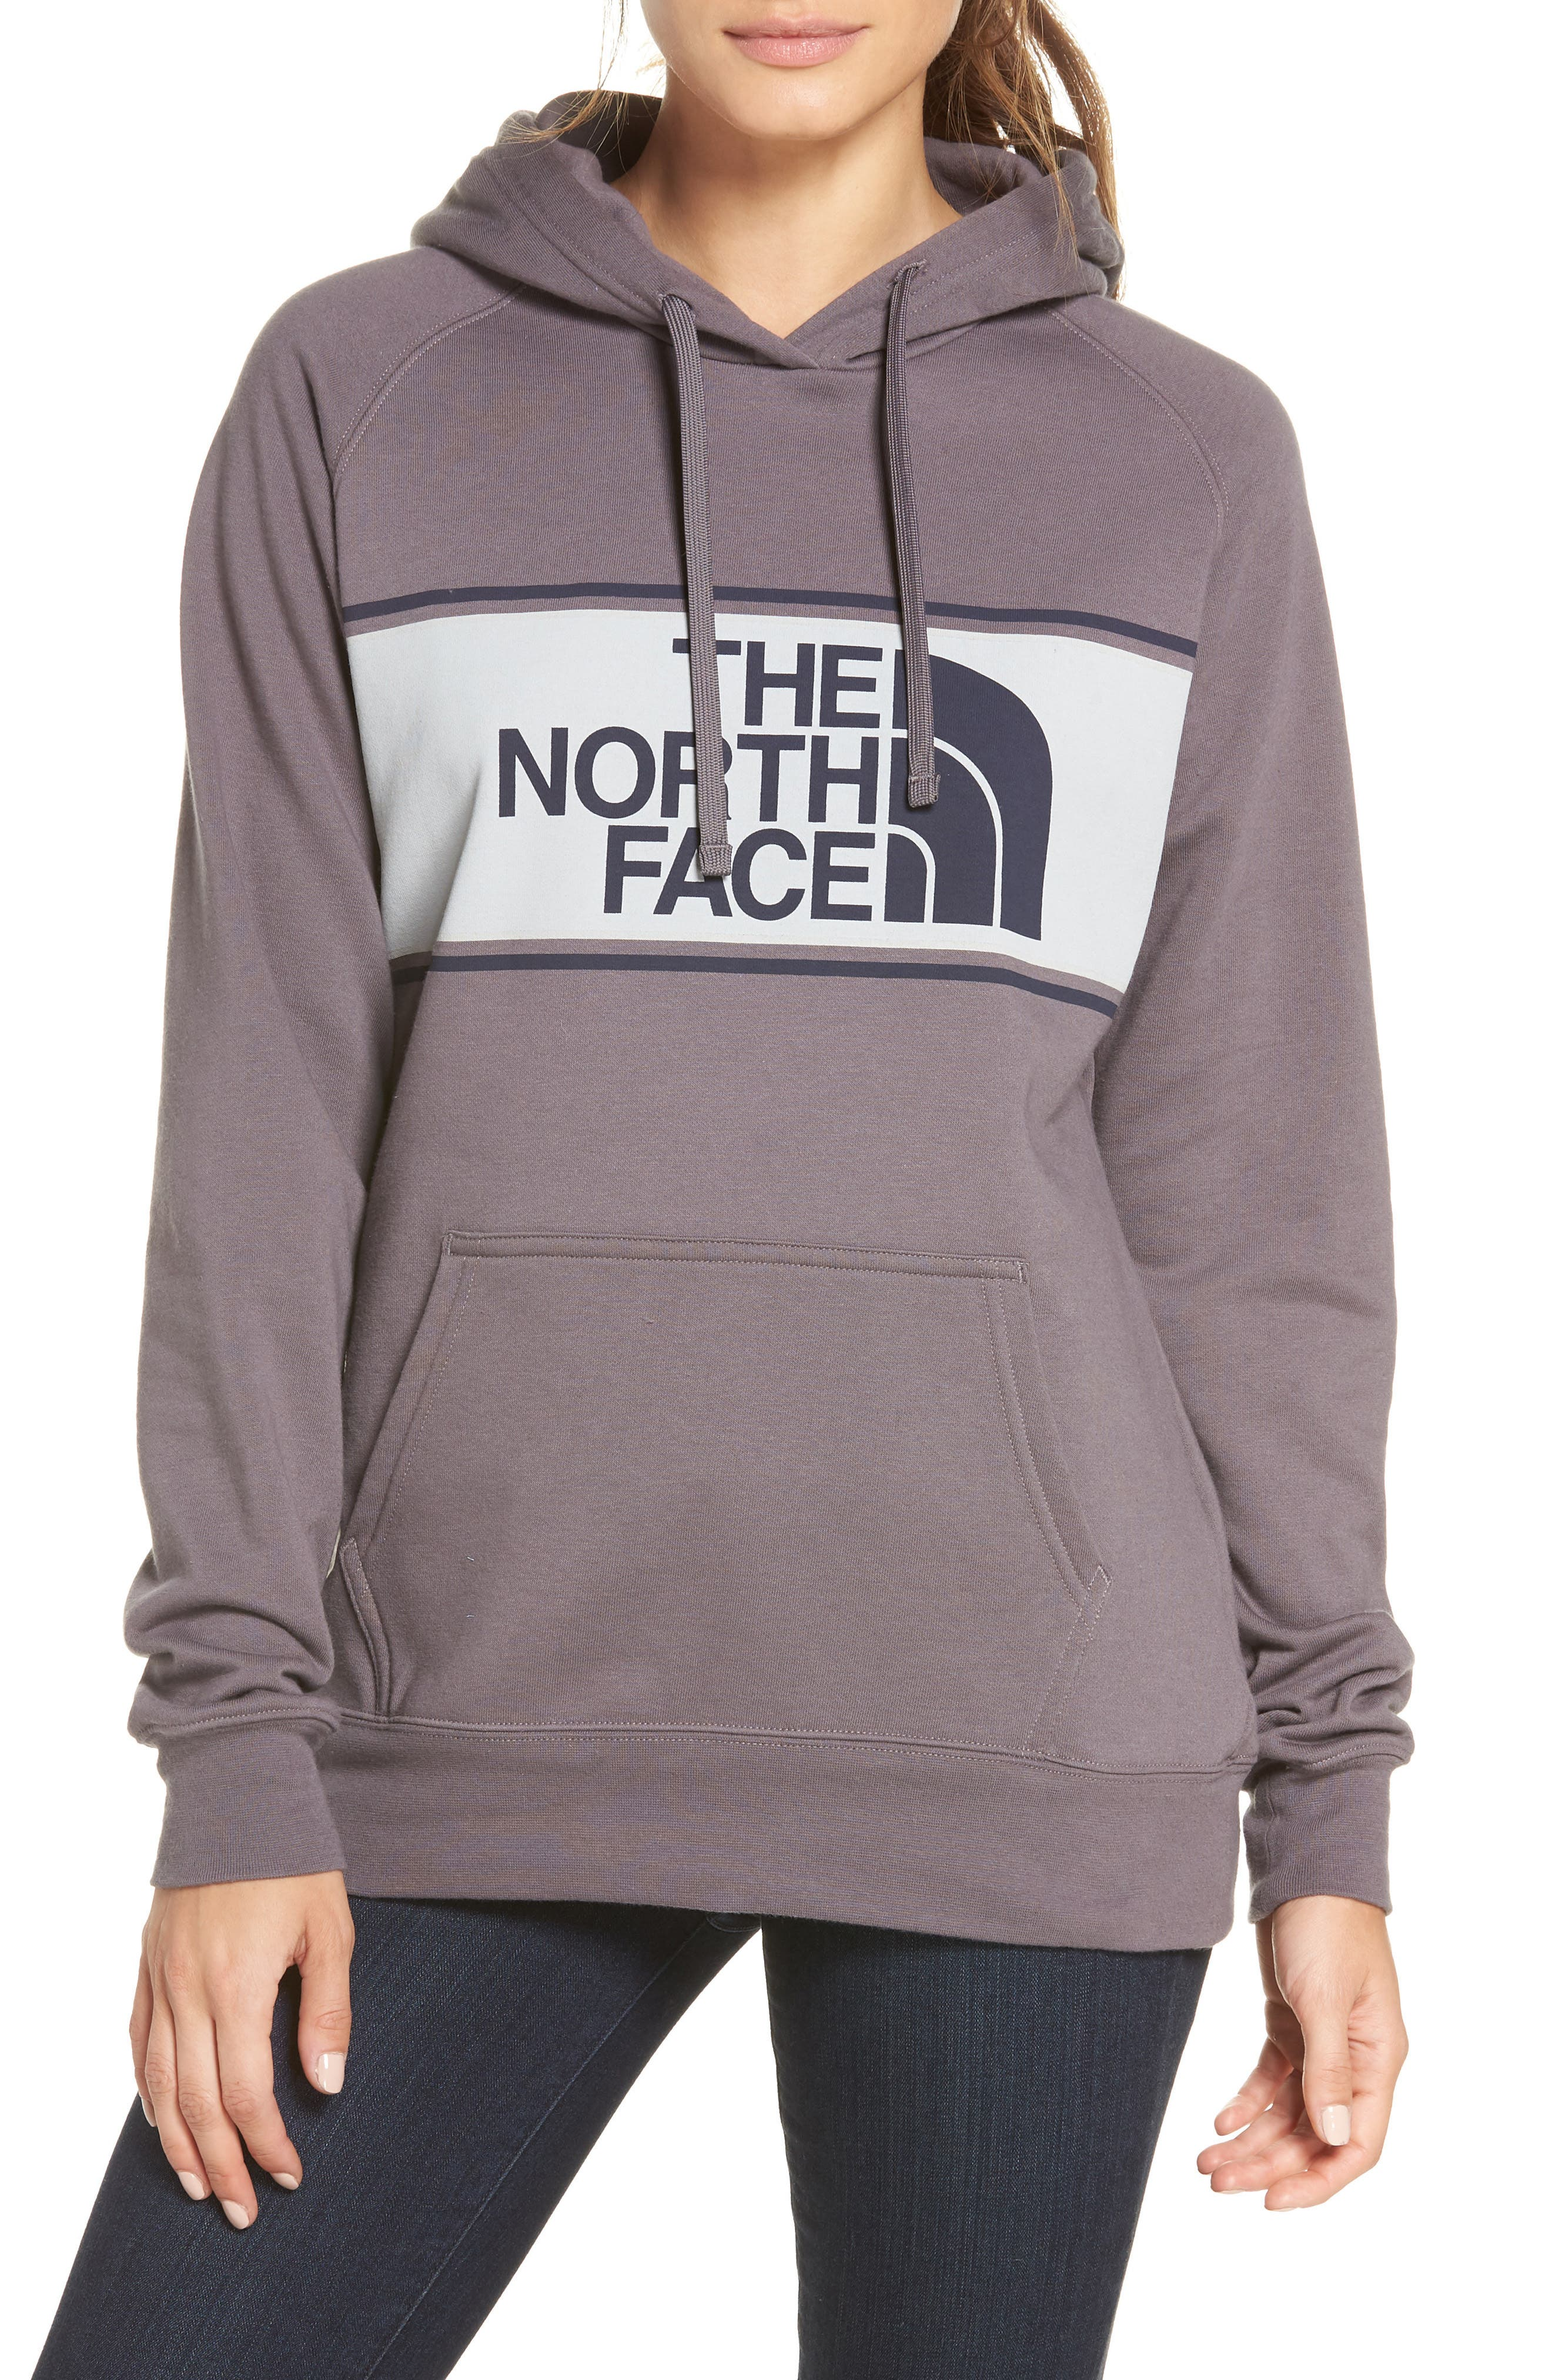 THE NORTH FACE Edge to Edge Logo Hoodie Sweatshirt, Main, color, 023